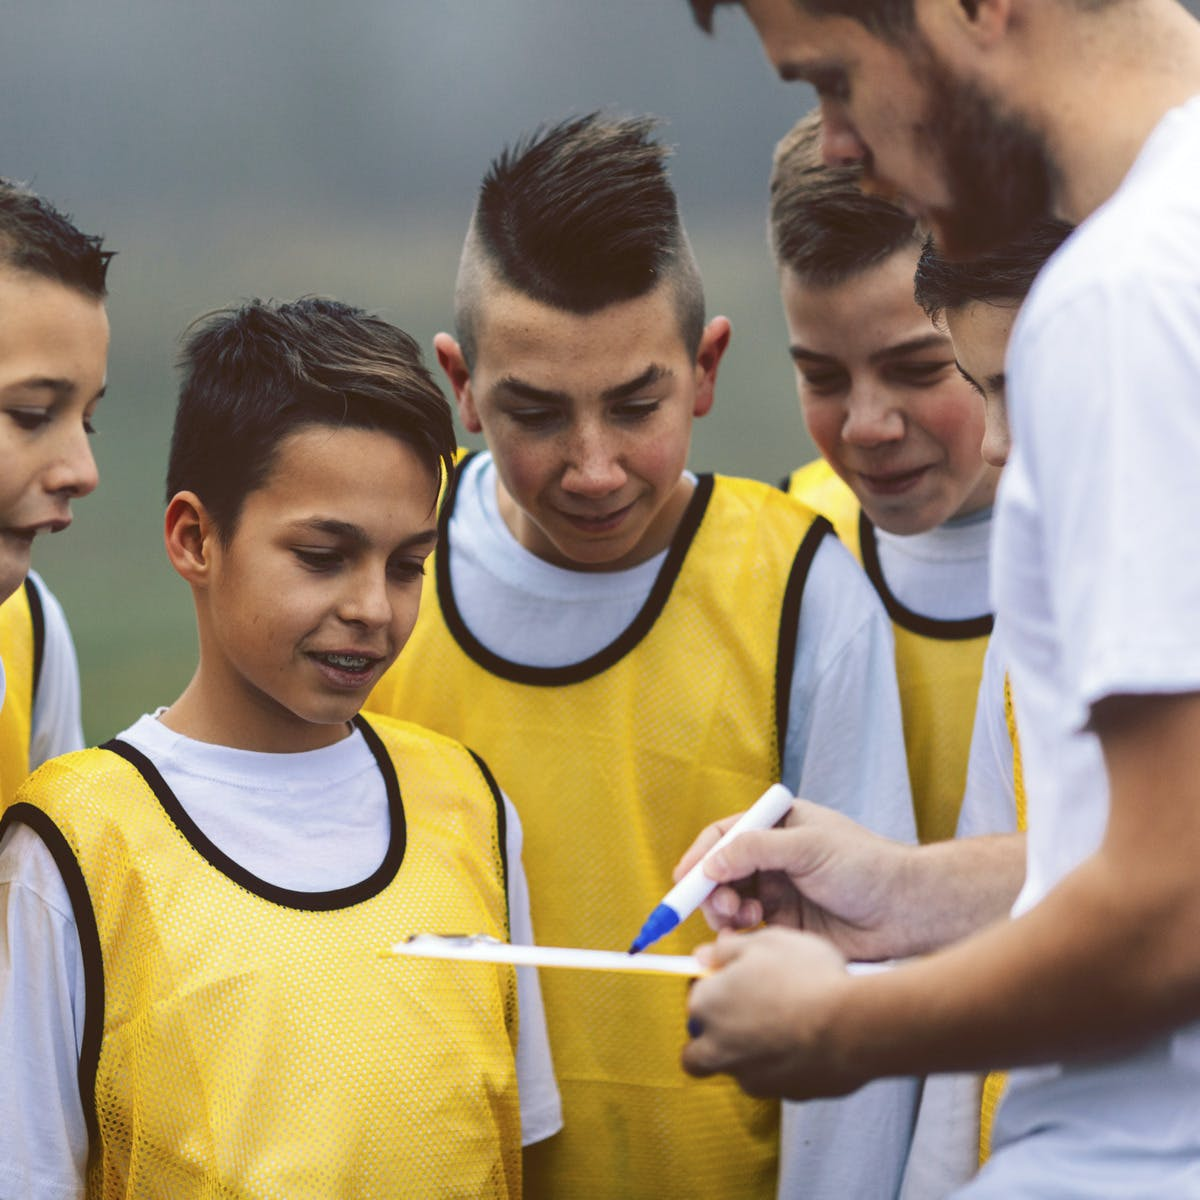 The Science of Training Young Athletes